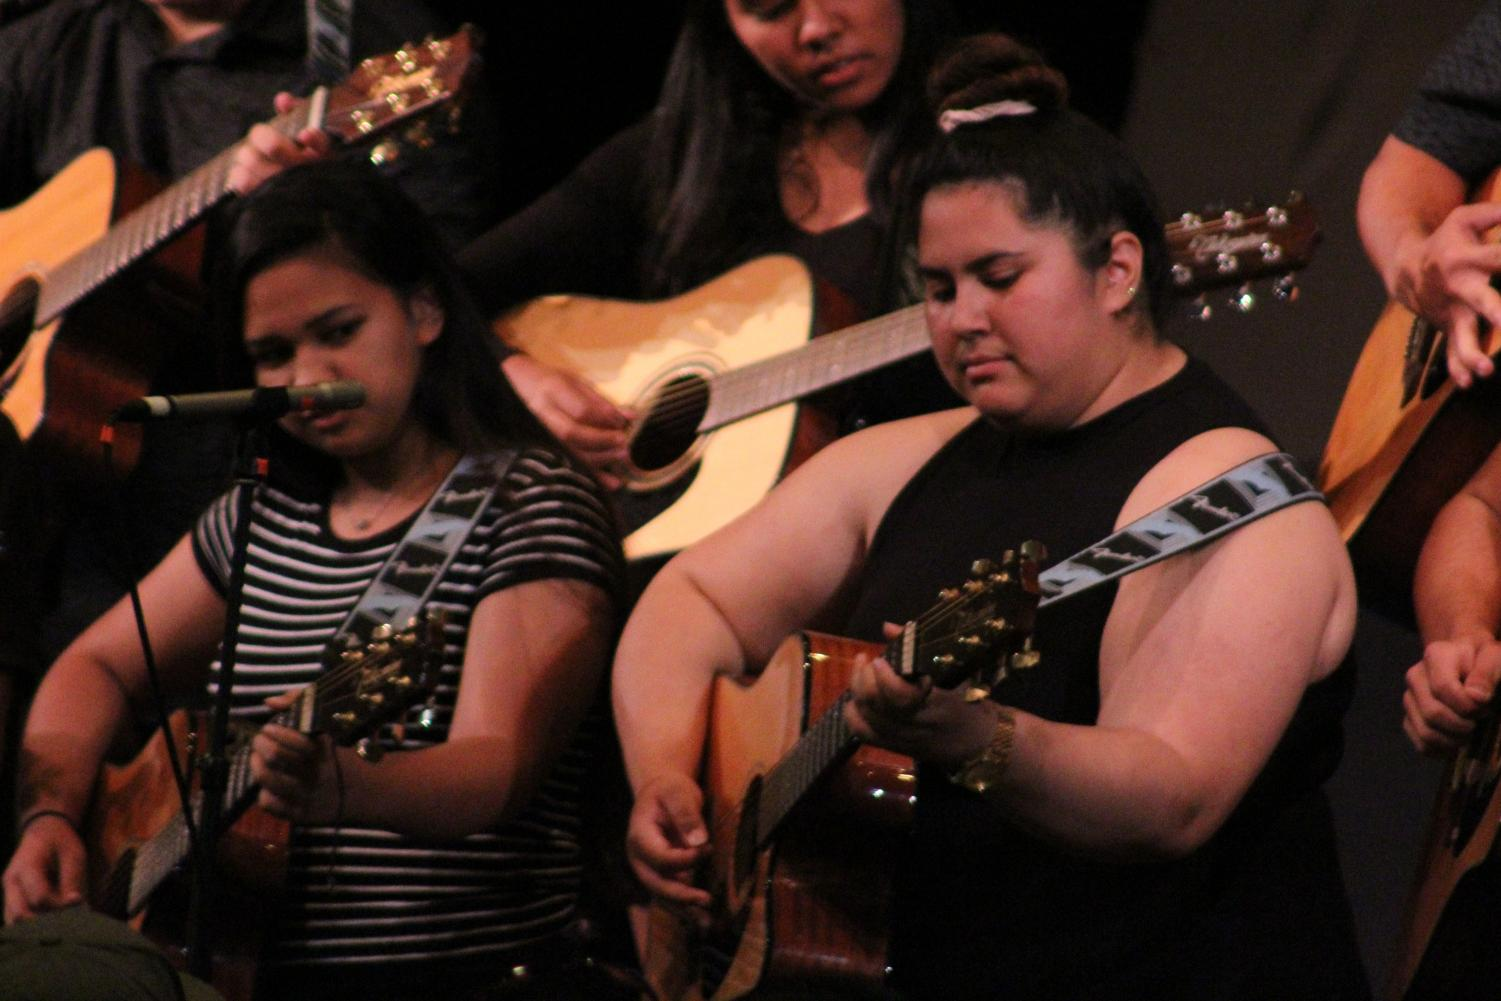 Senior Natalie Warrington plays guitar with the rest of the Guitar 1 class at the spring concert, May 10, in Keōpūolani Hale. The annual concert showcases the work of students in various performing arts classes.